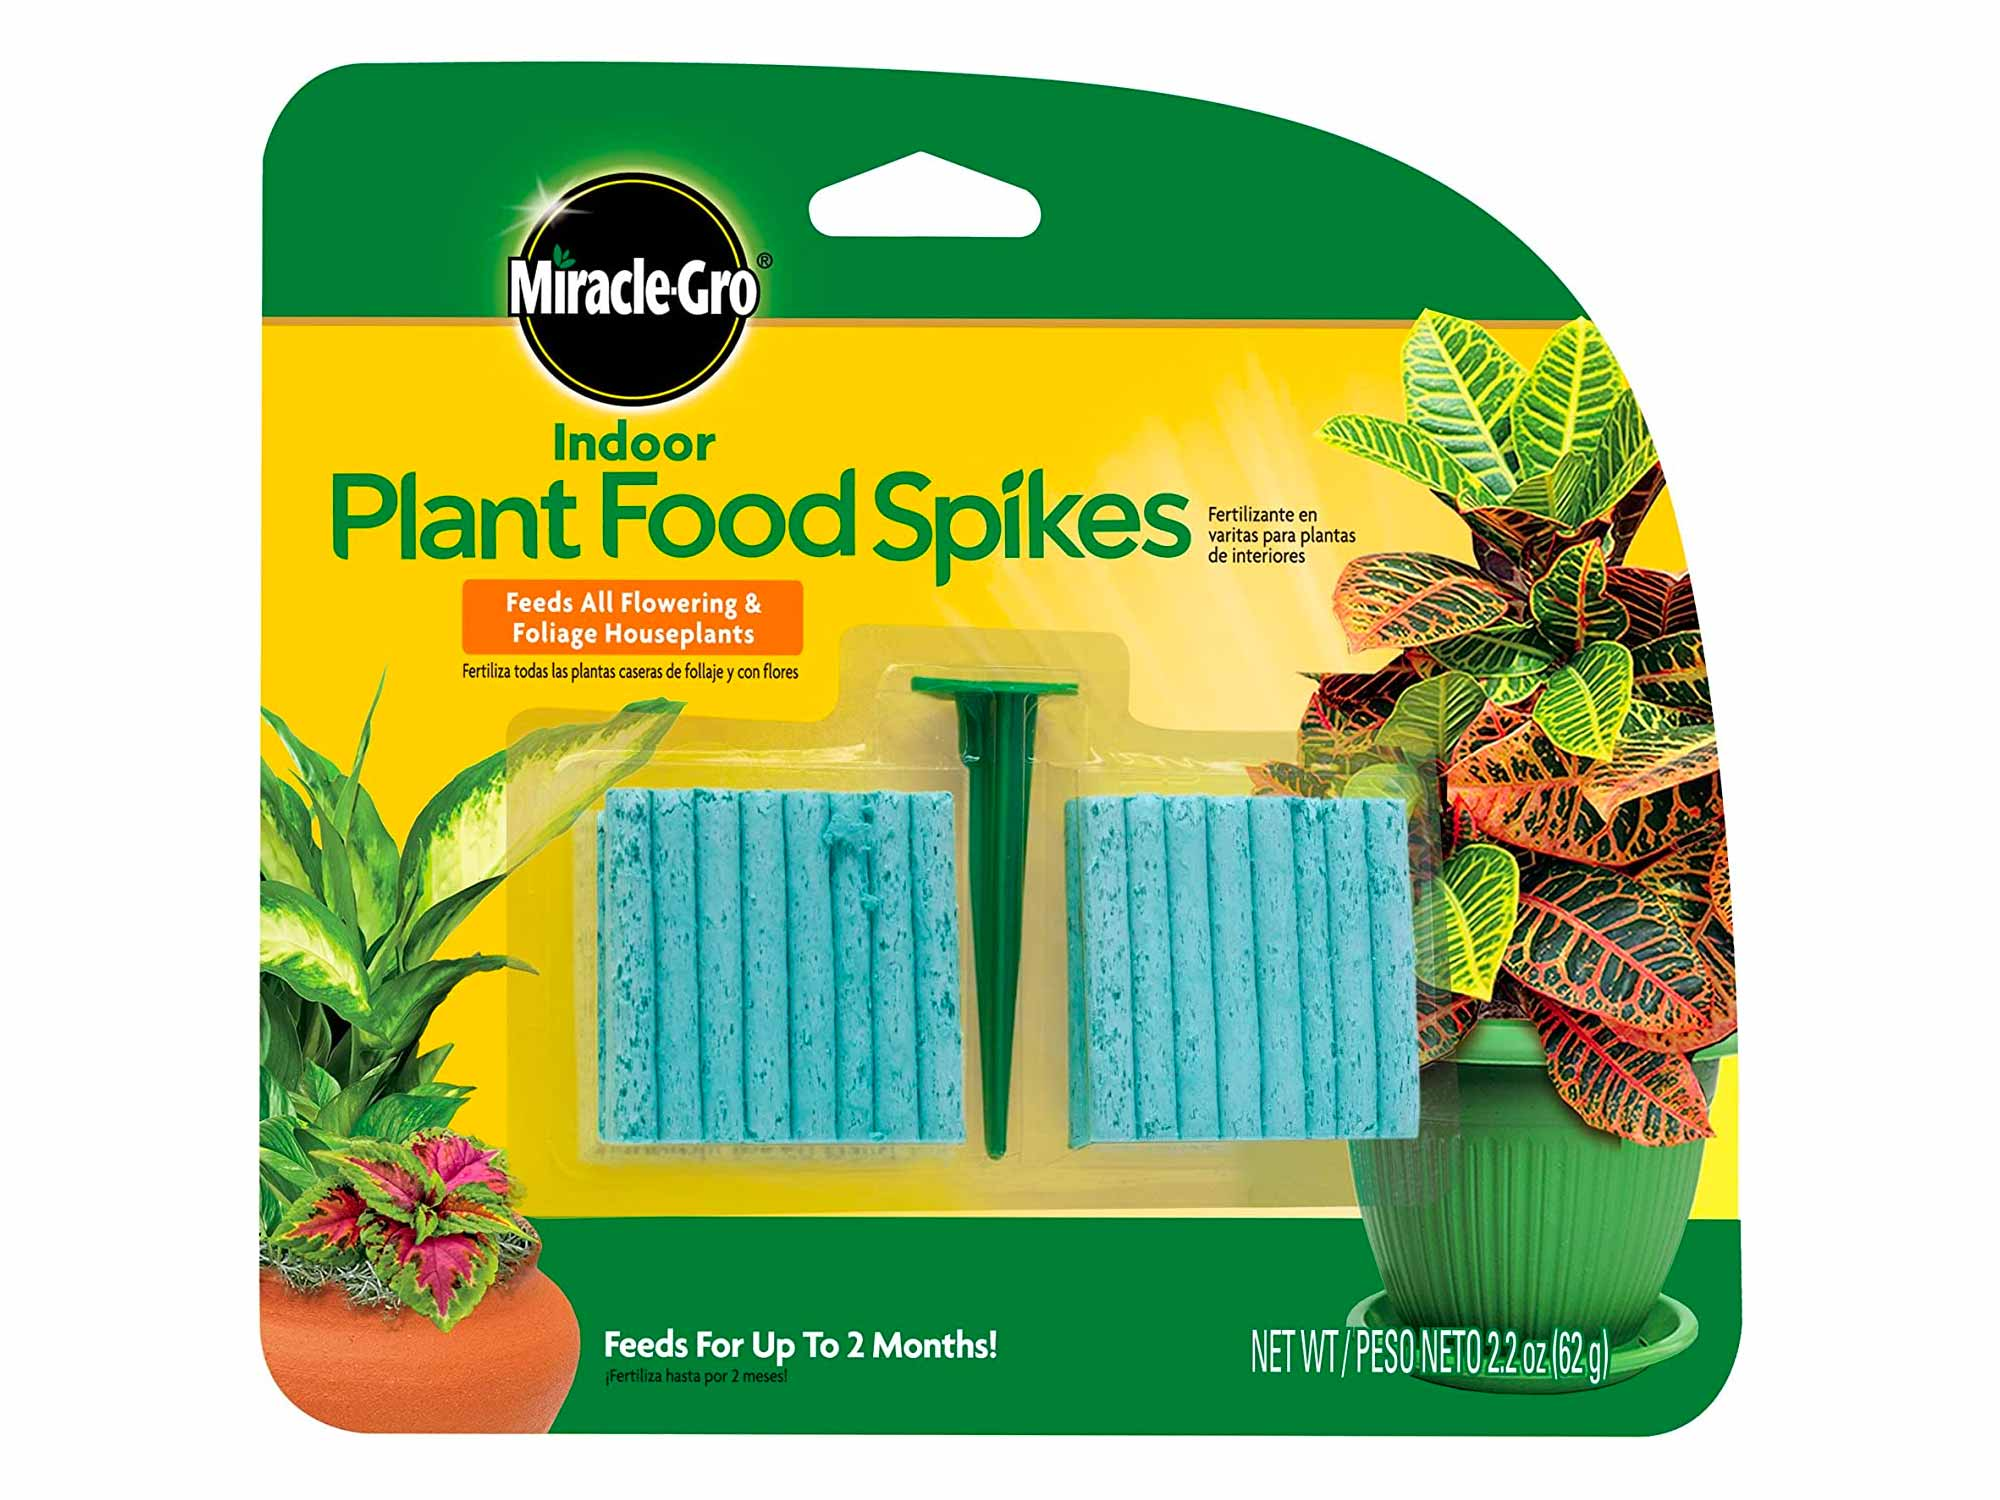 Miracle-Gro Indoor Plant Food Spikes, Includes 48 Spikes - Continuous Feeding for all Flowering and Foliage Houseplants